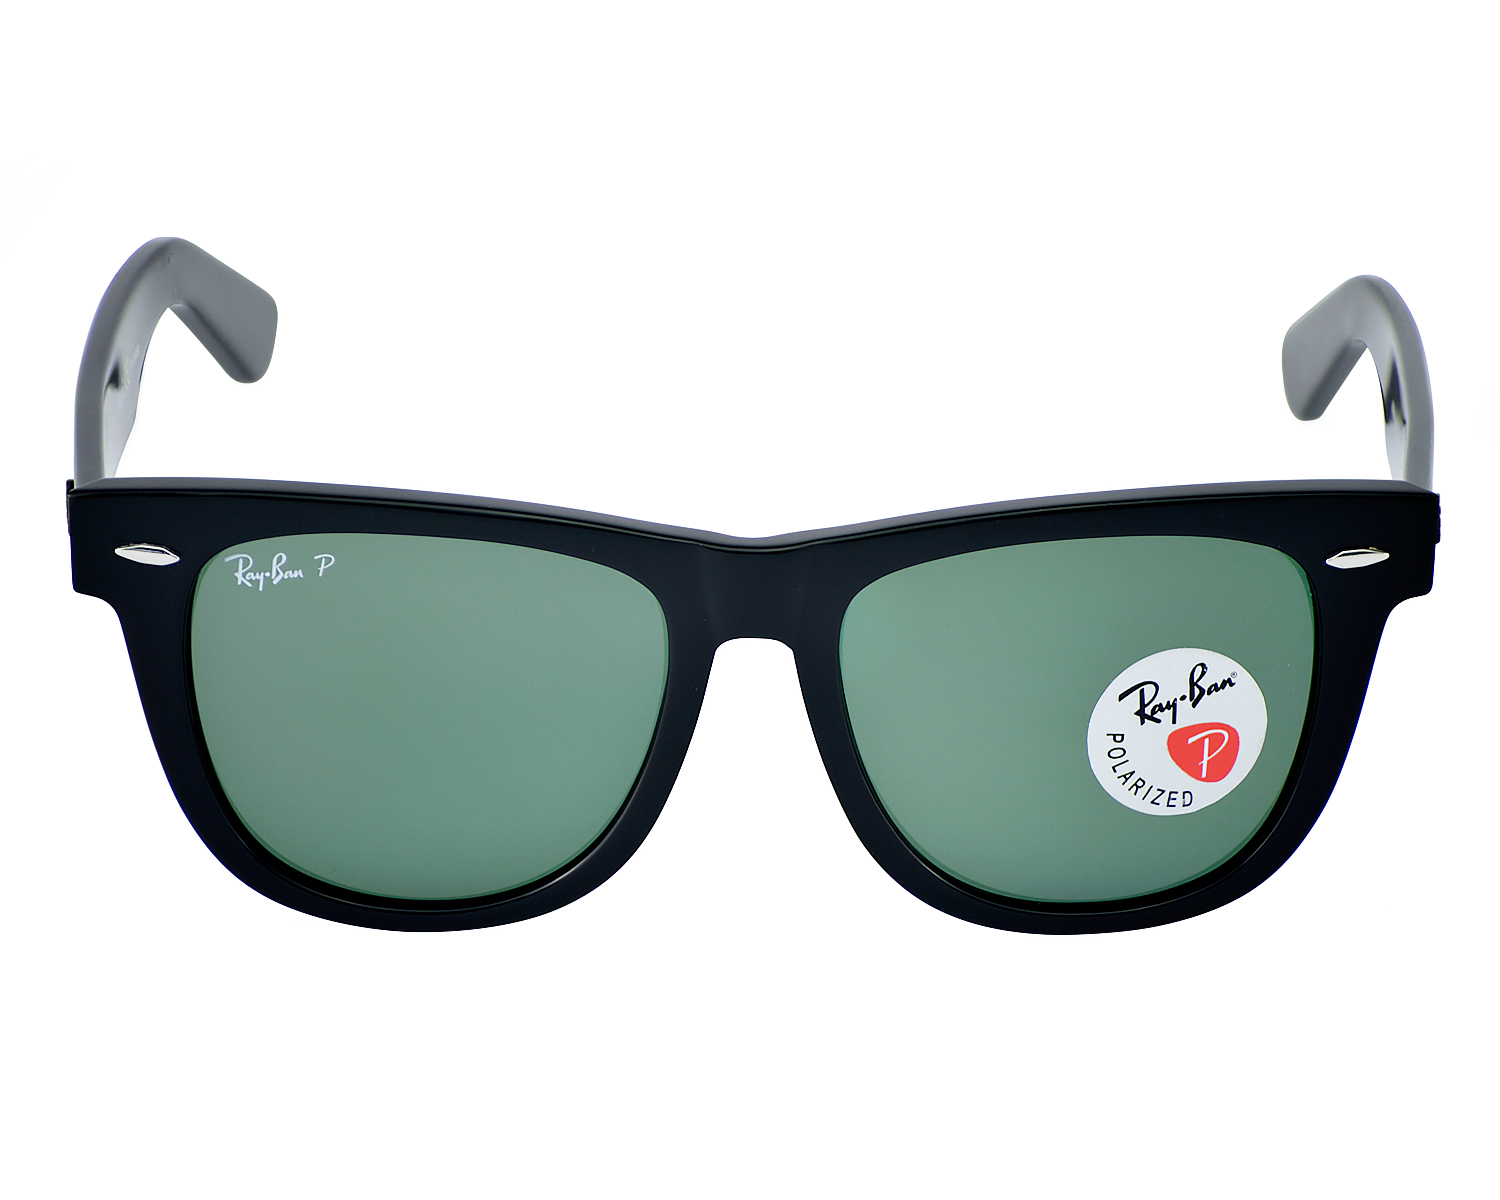 2ec15c9650 Product Details. Ray Ban RB2140 901 58 Original Wayfarer Classics Black  Frame  Polarized Green ...